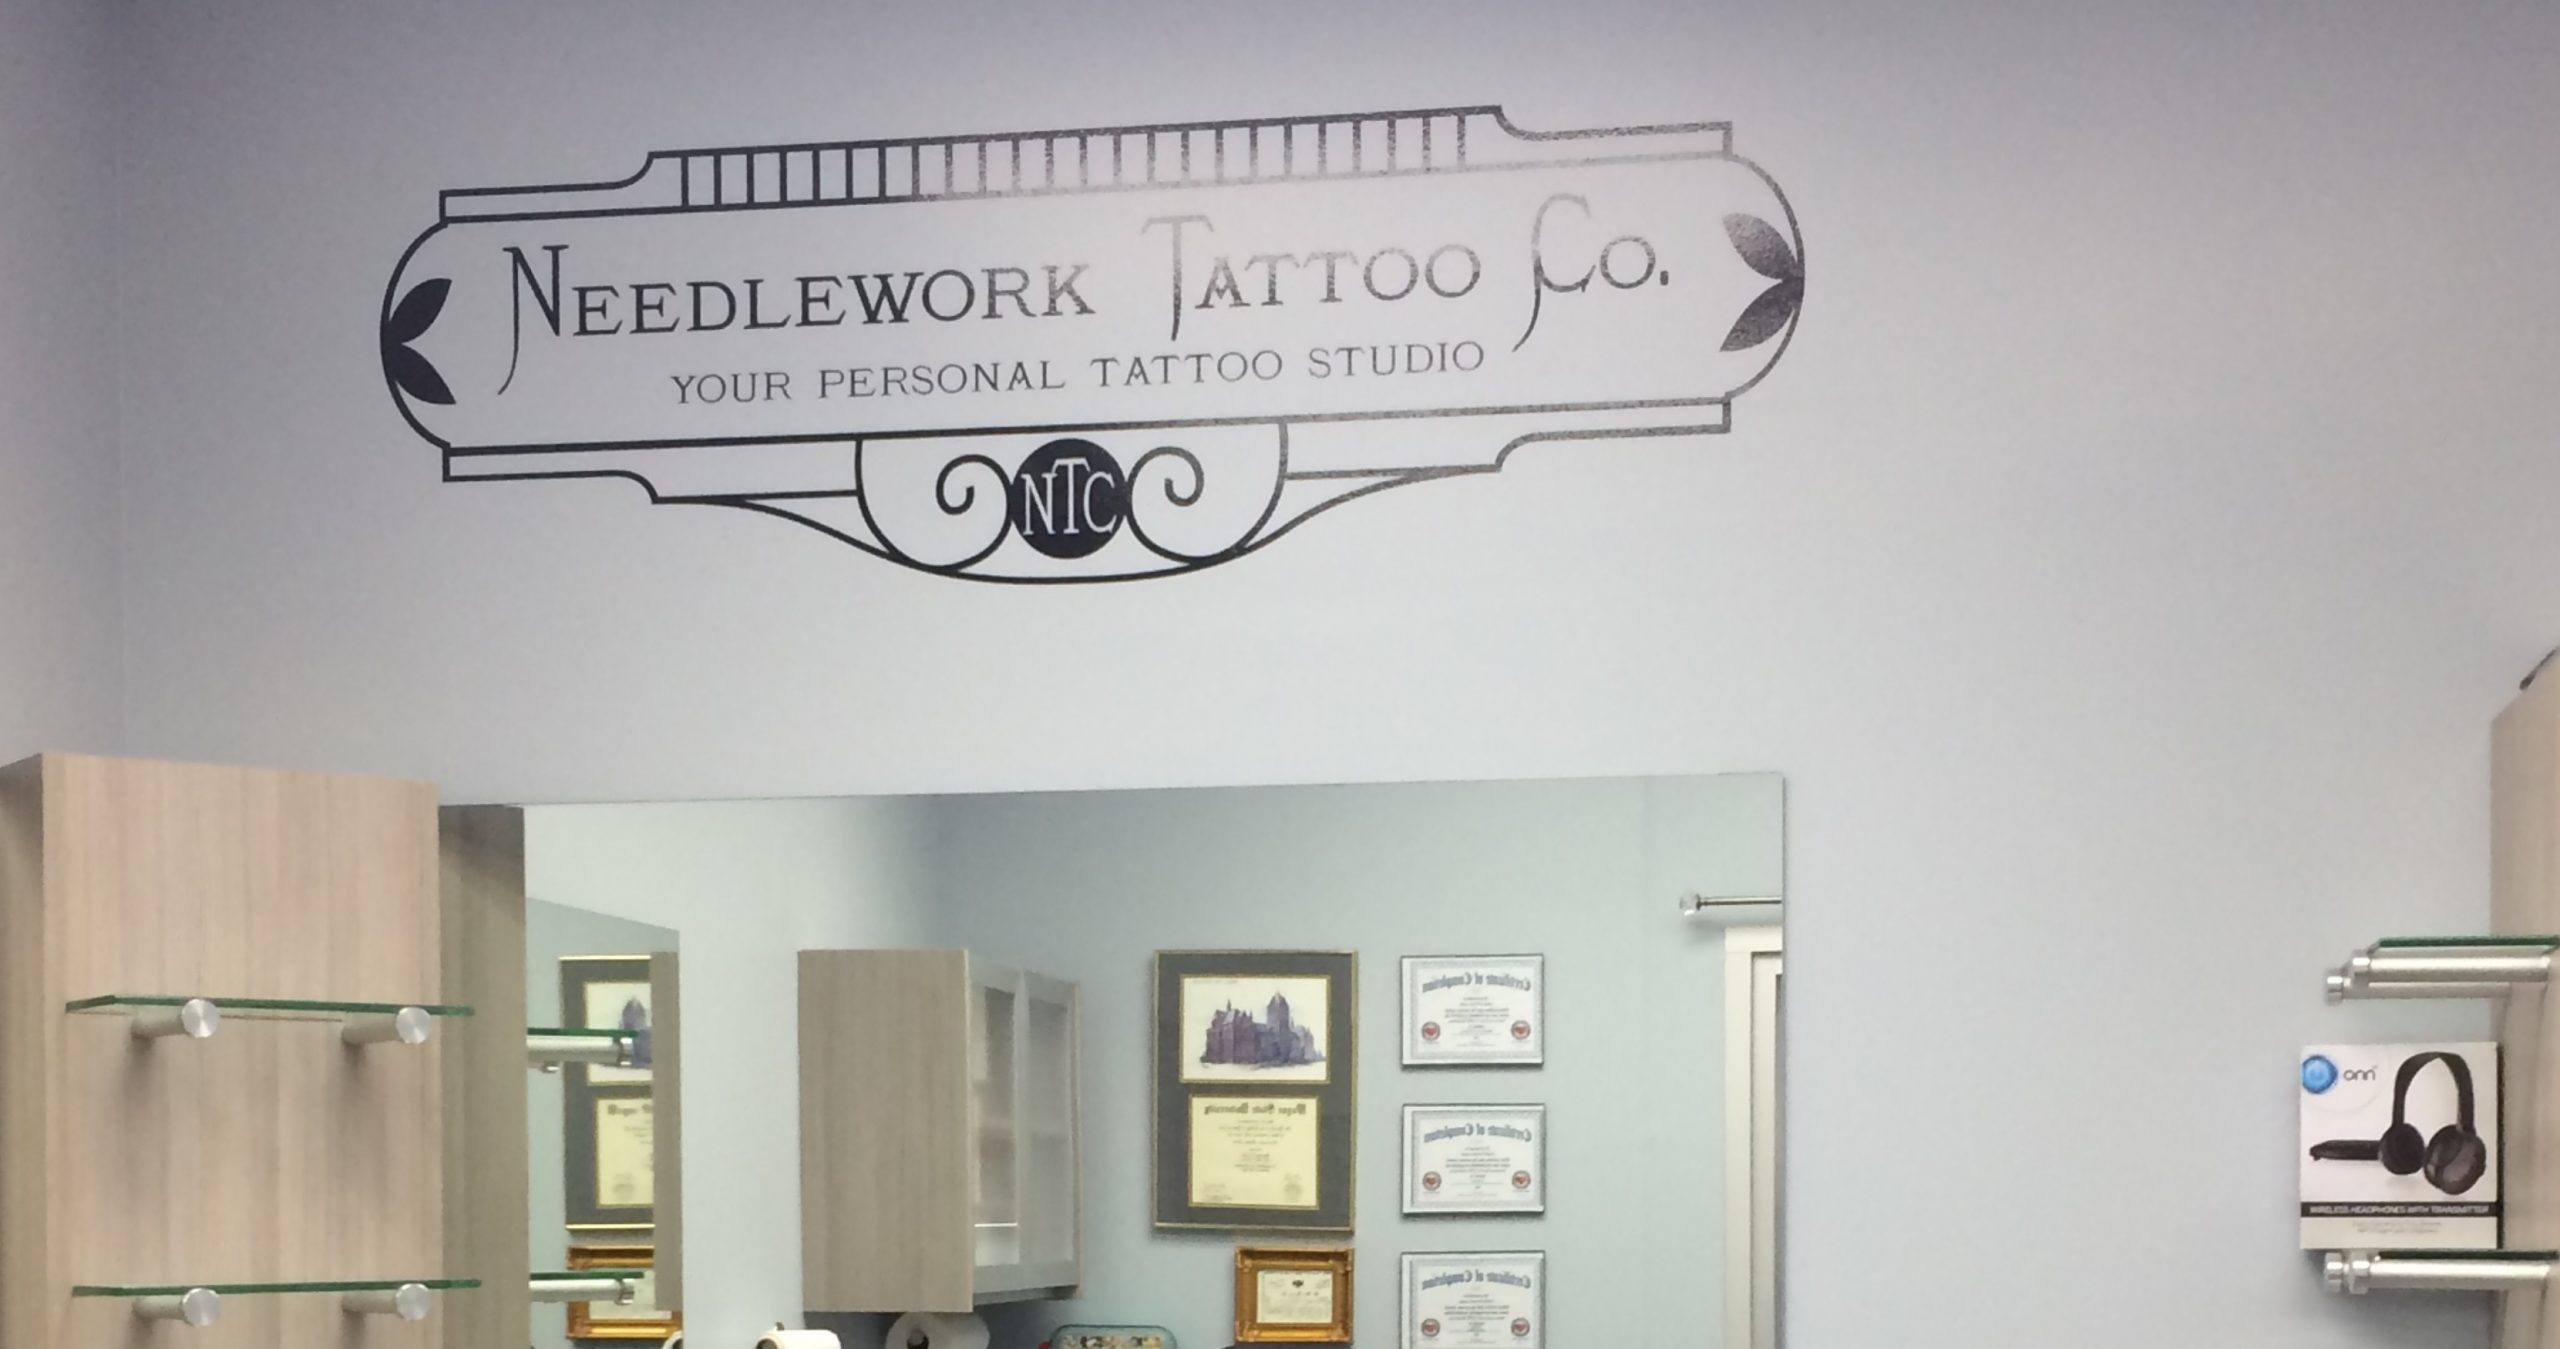 Needlework Tattoo - Wall Graphics - 02